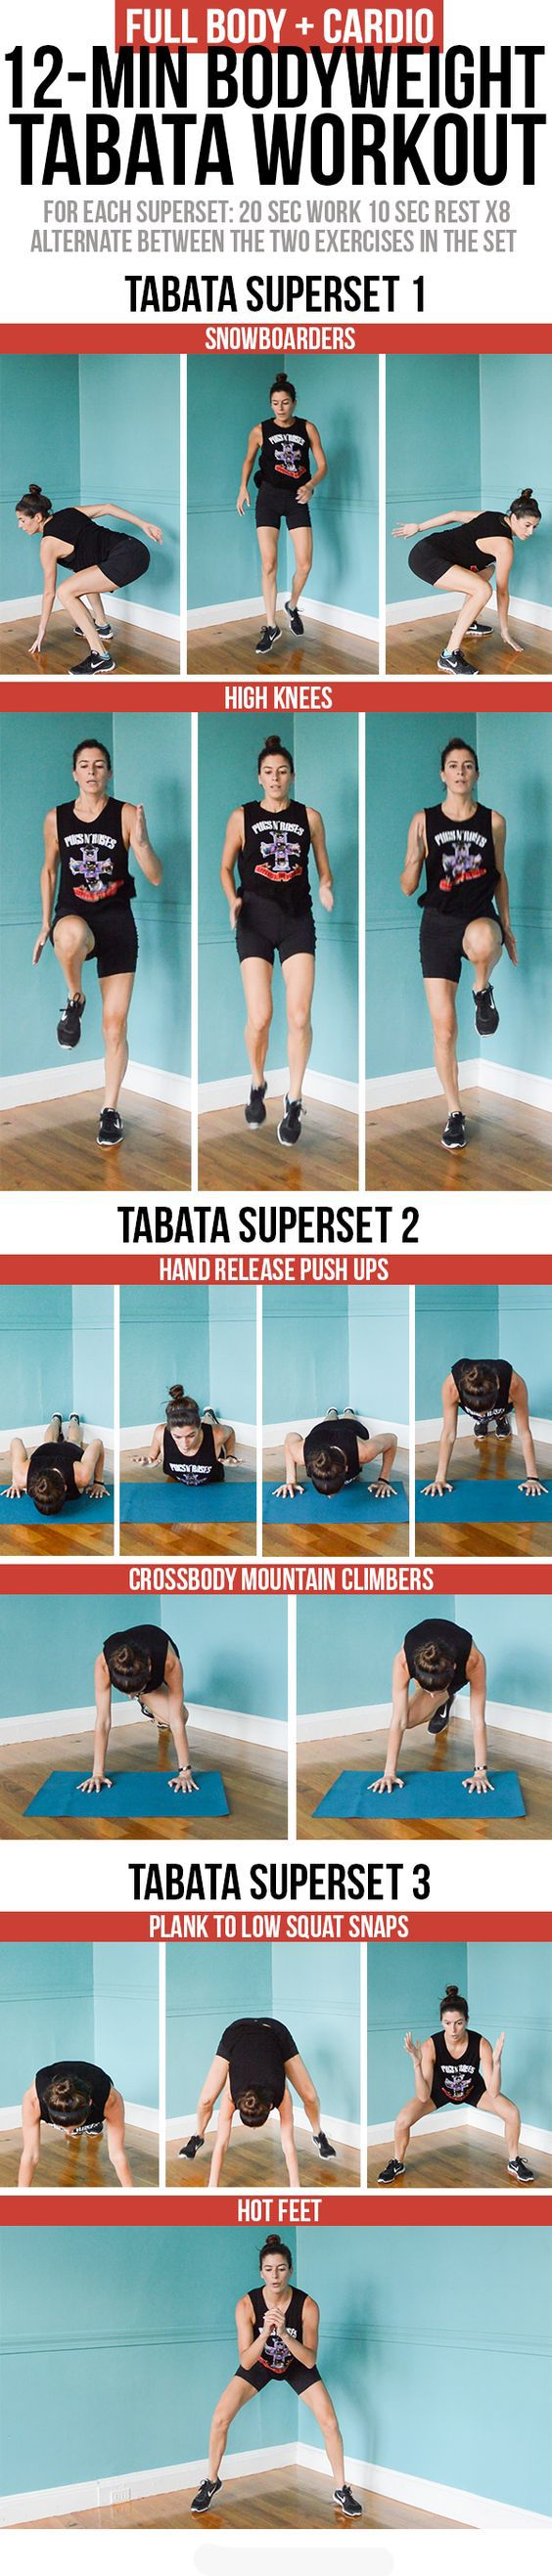 Full-Body & Cardio Tabata Workout - 12 minute long and made up of three tabata supersets of bodyweight exercises #weightlossworkout #cardioworkout #tabataworkout #bodyweightworkout  https://www.youtube.com/watch?v=Q96gA6-kRZk